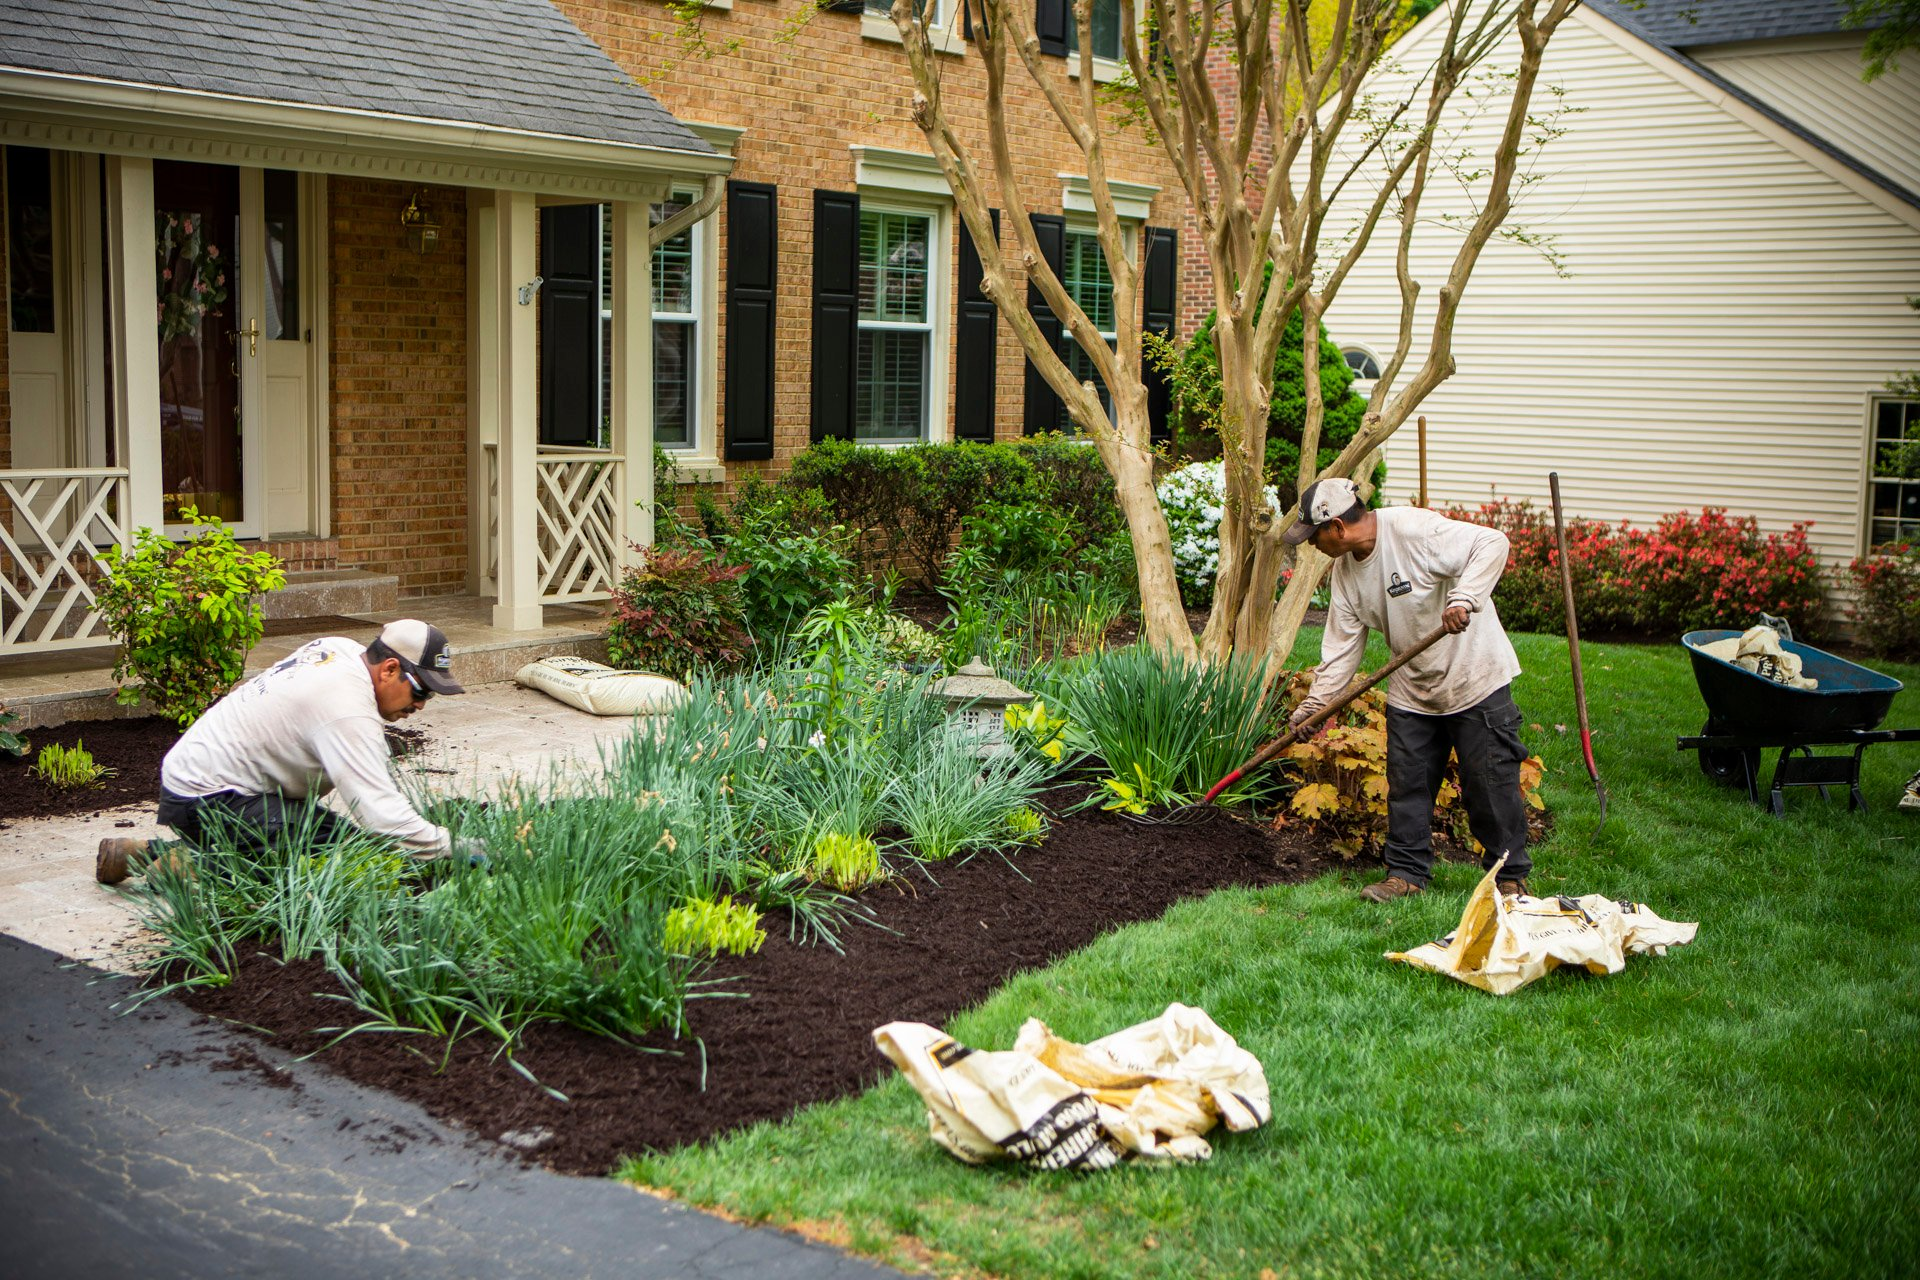 maintenance-mulch-bag-plantings-house-tree